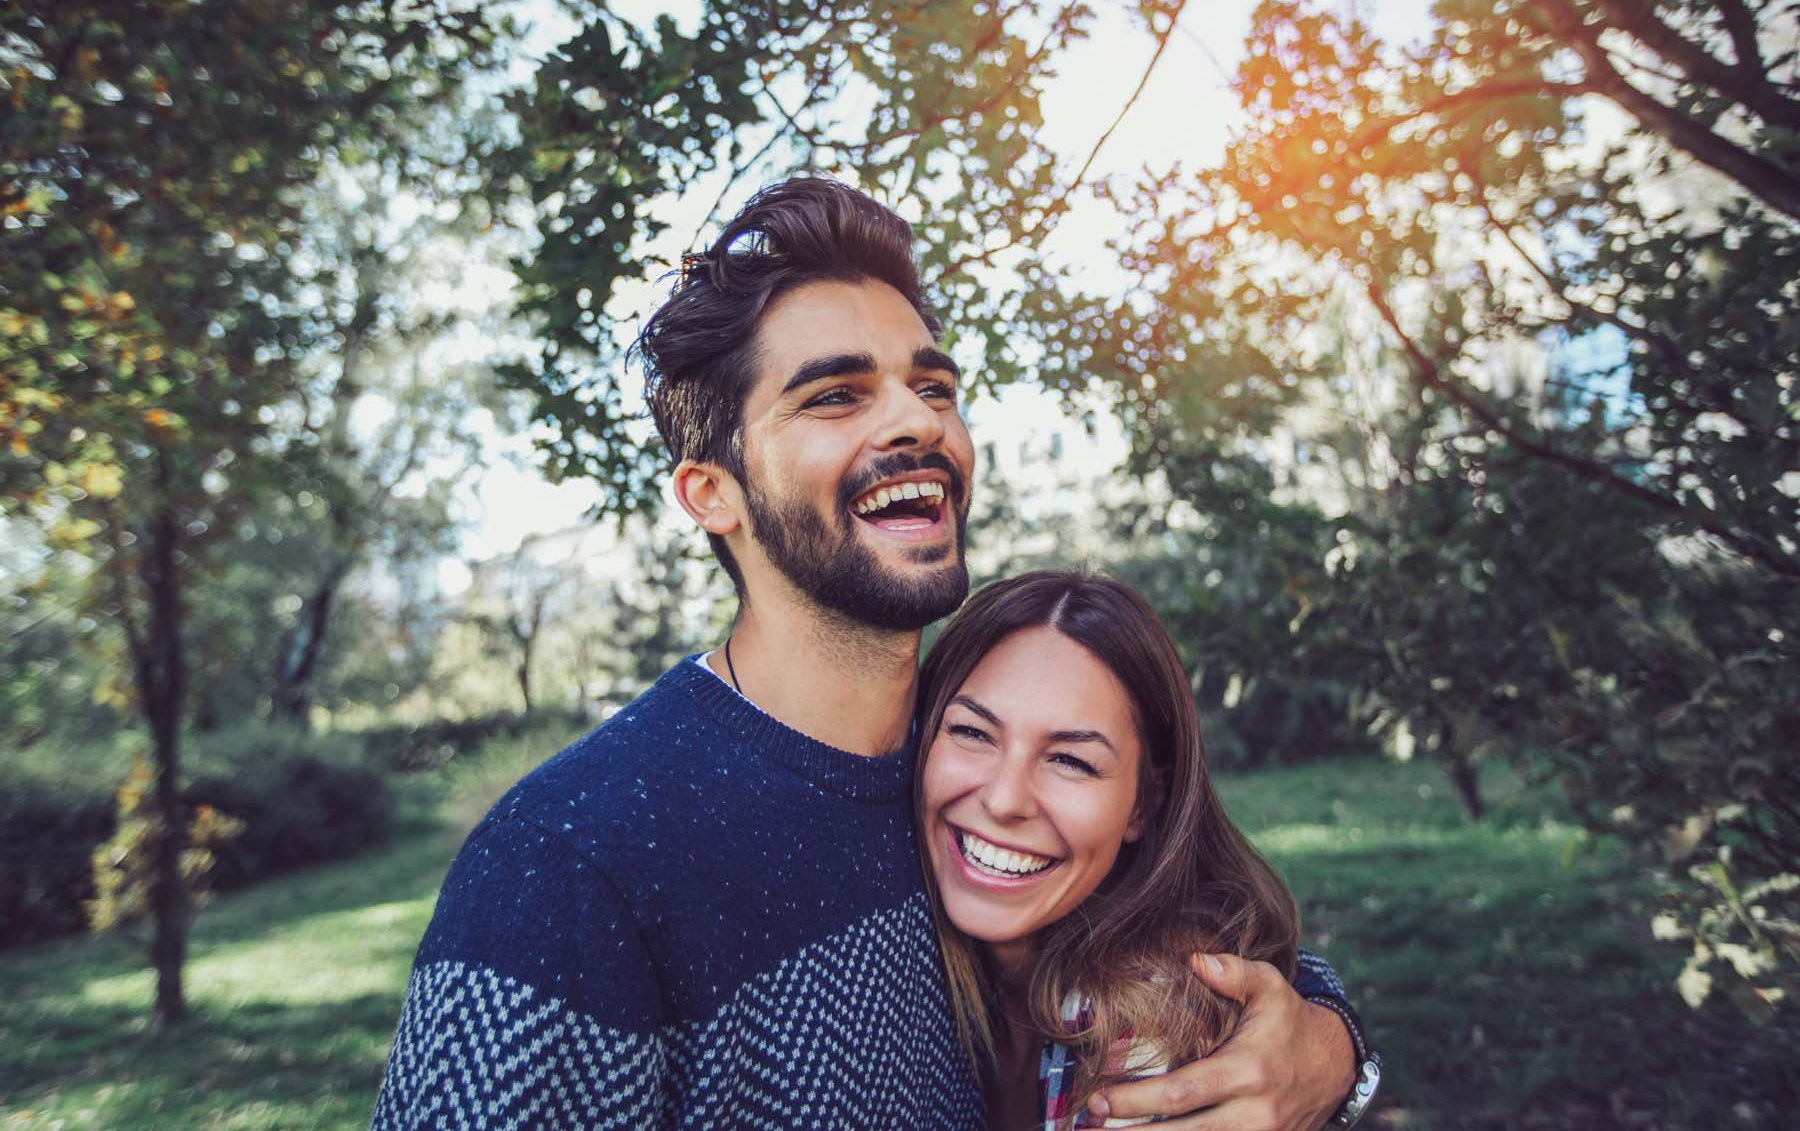 Stock Image of Happy Couple